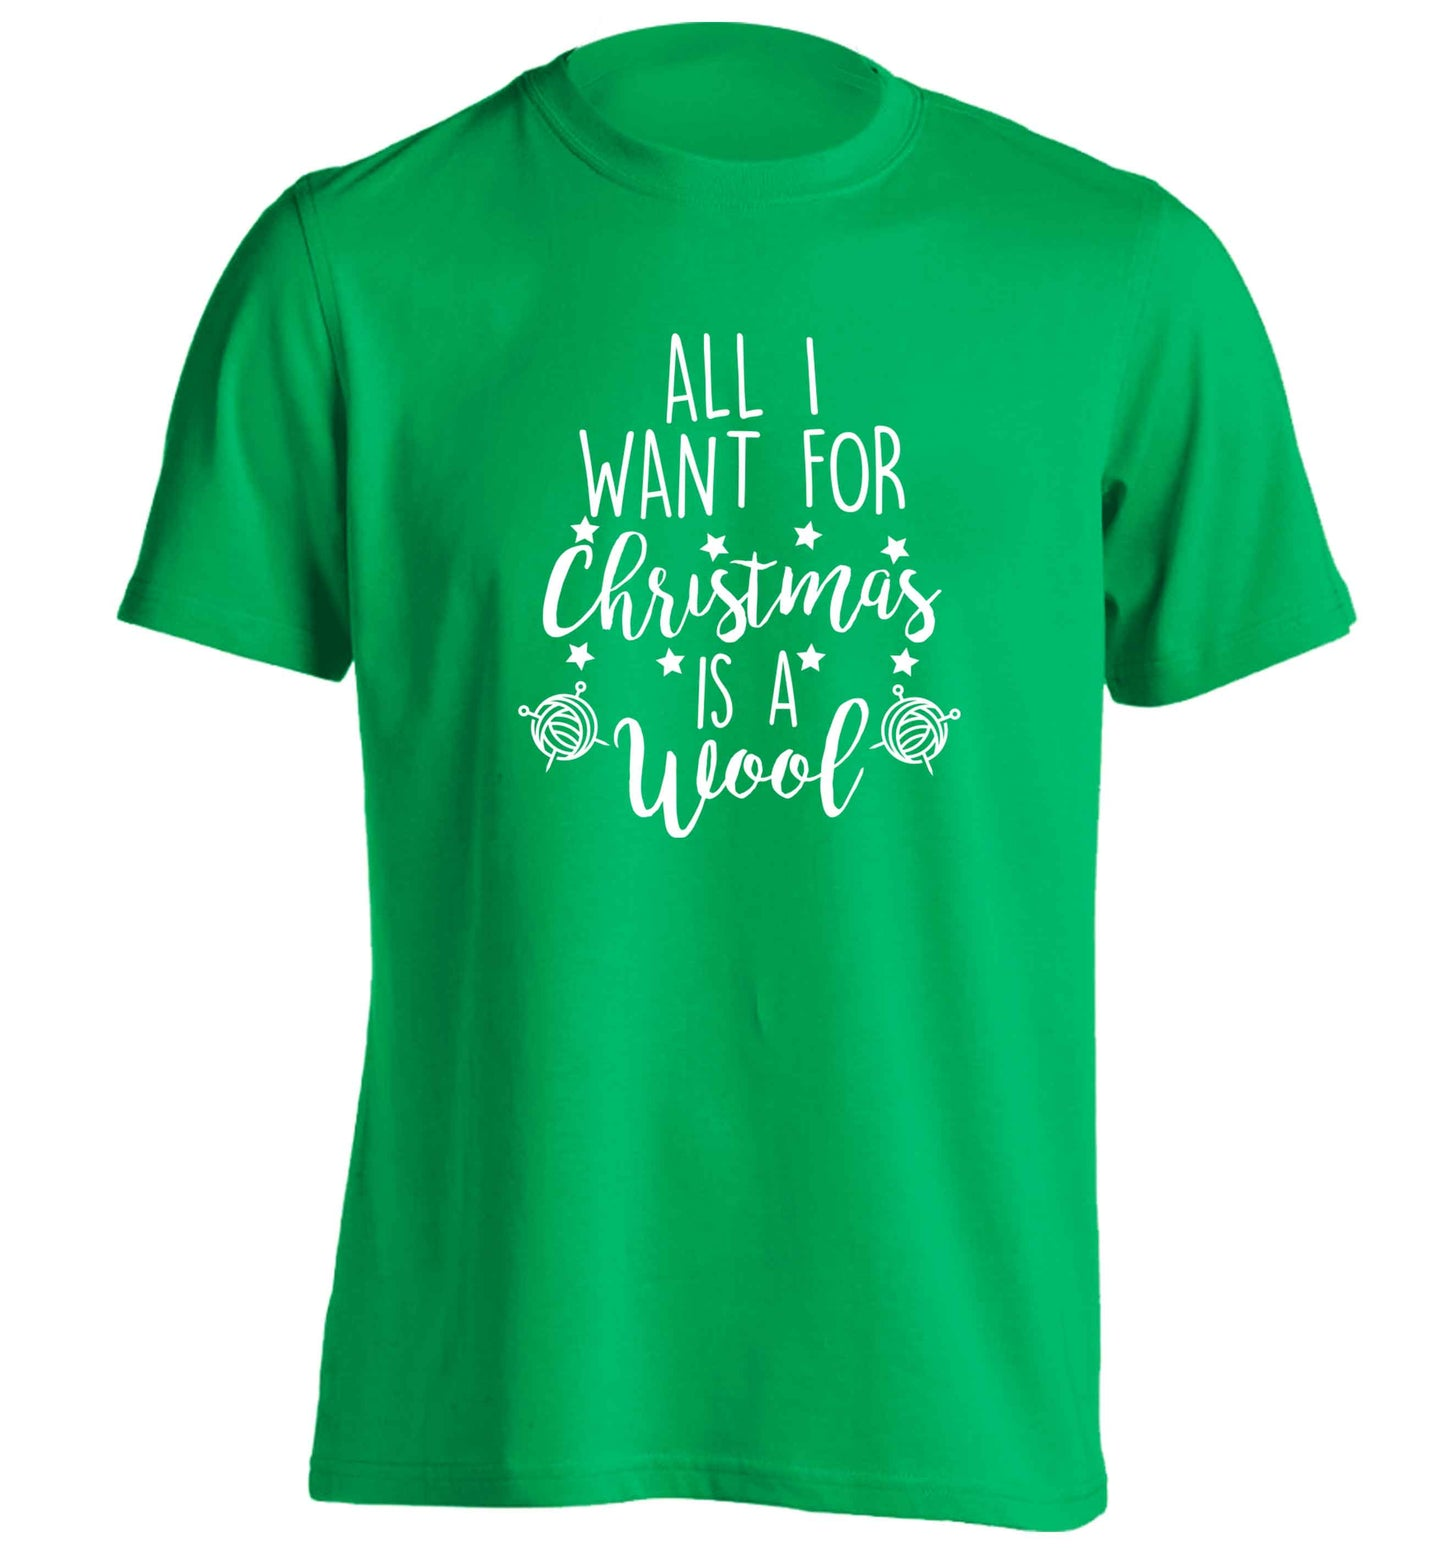 All I want for Christmas is wool! adults unisex green Tshirt 2XL